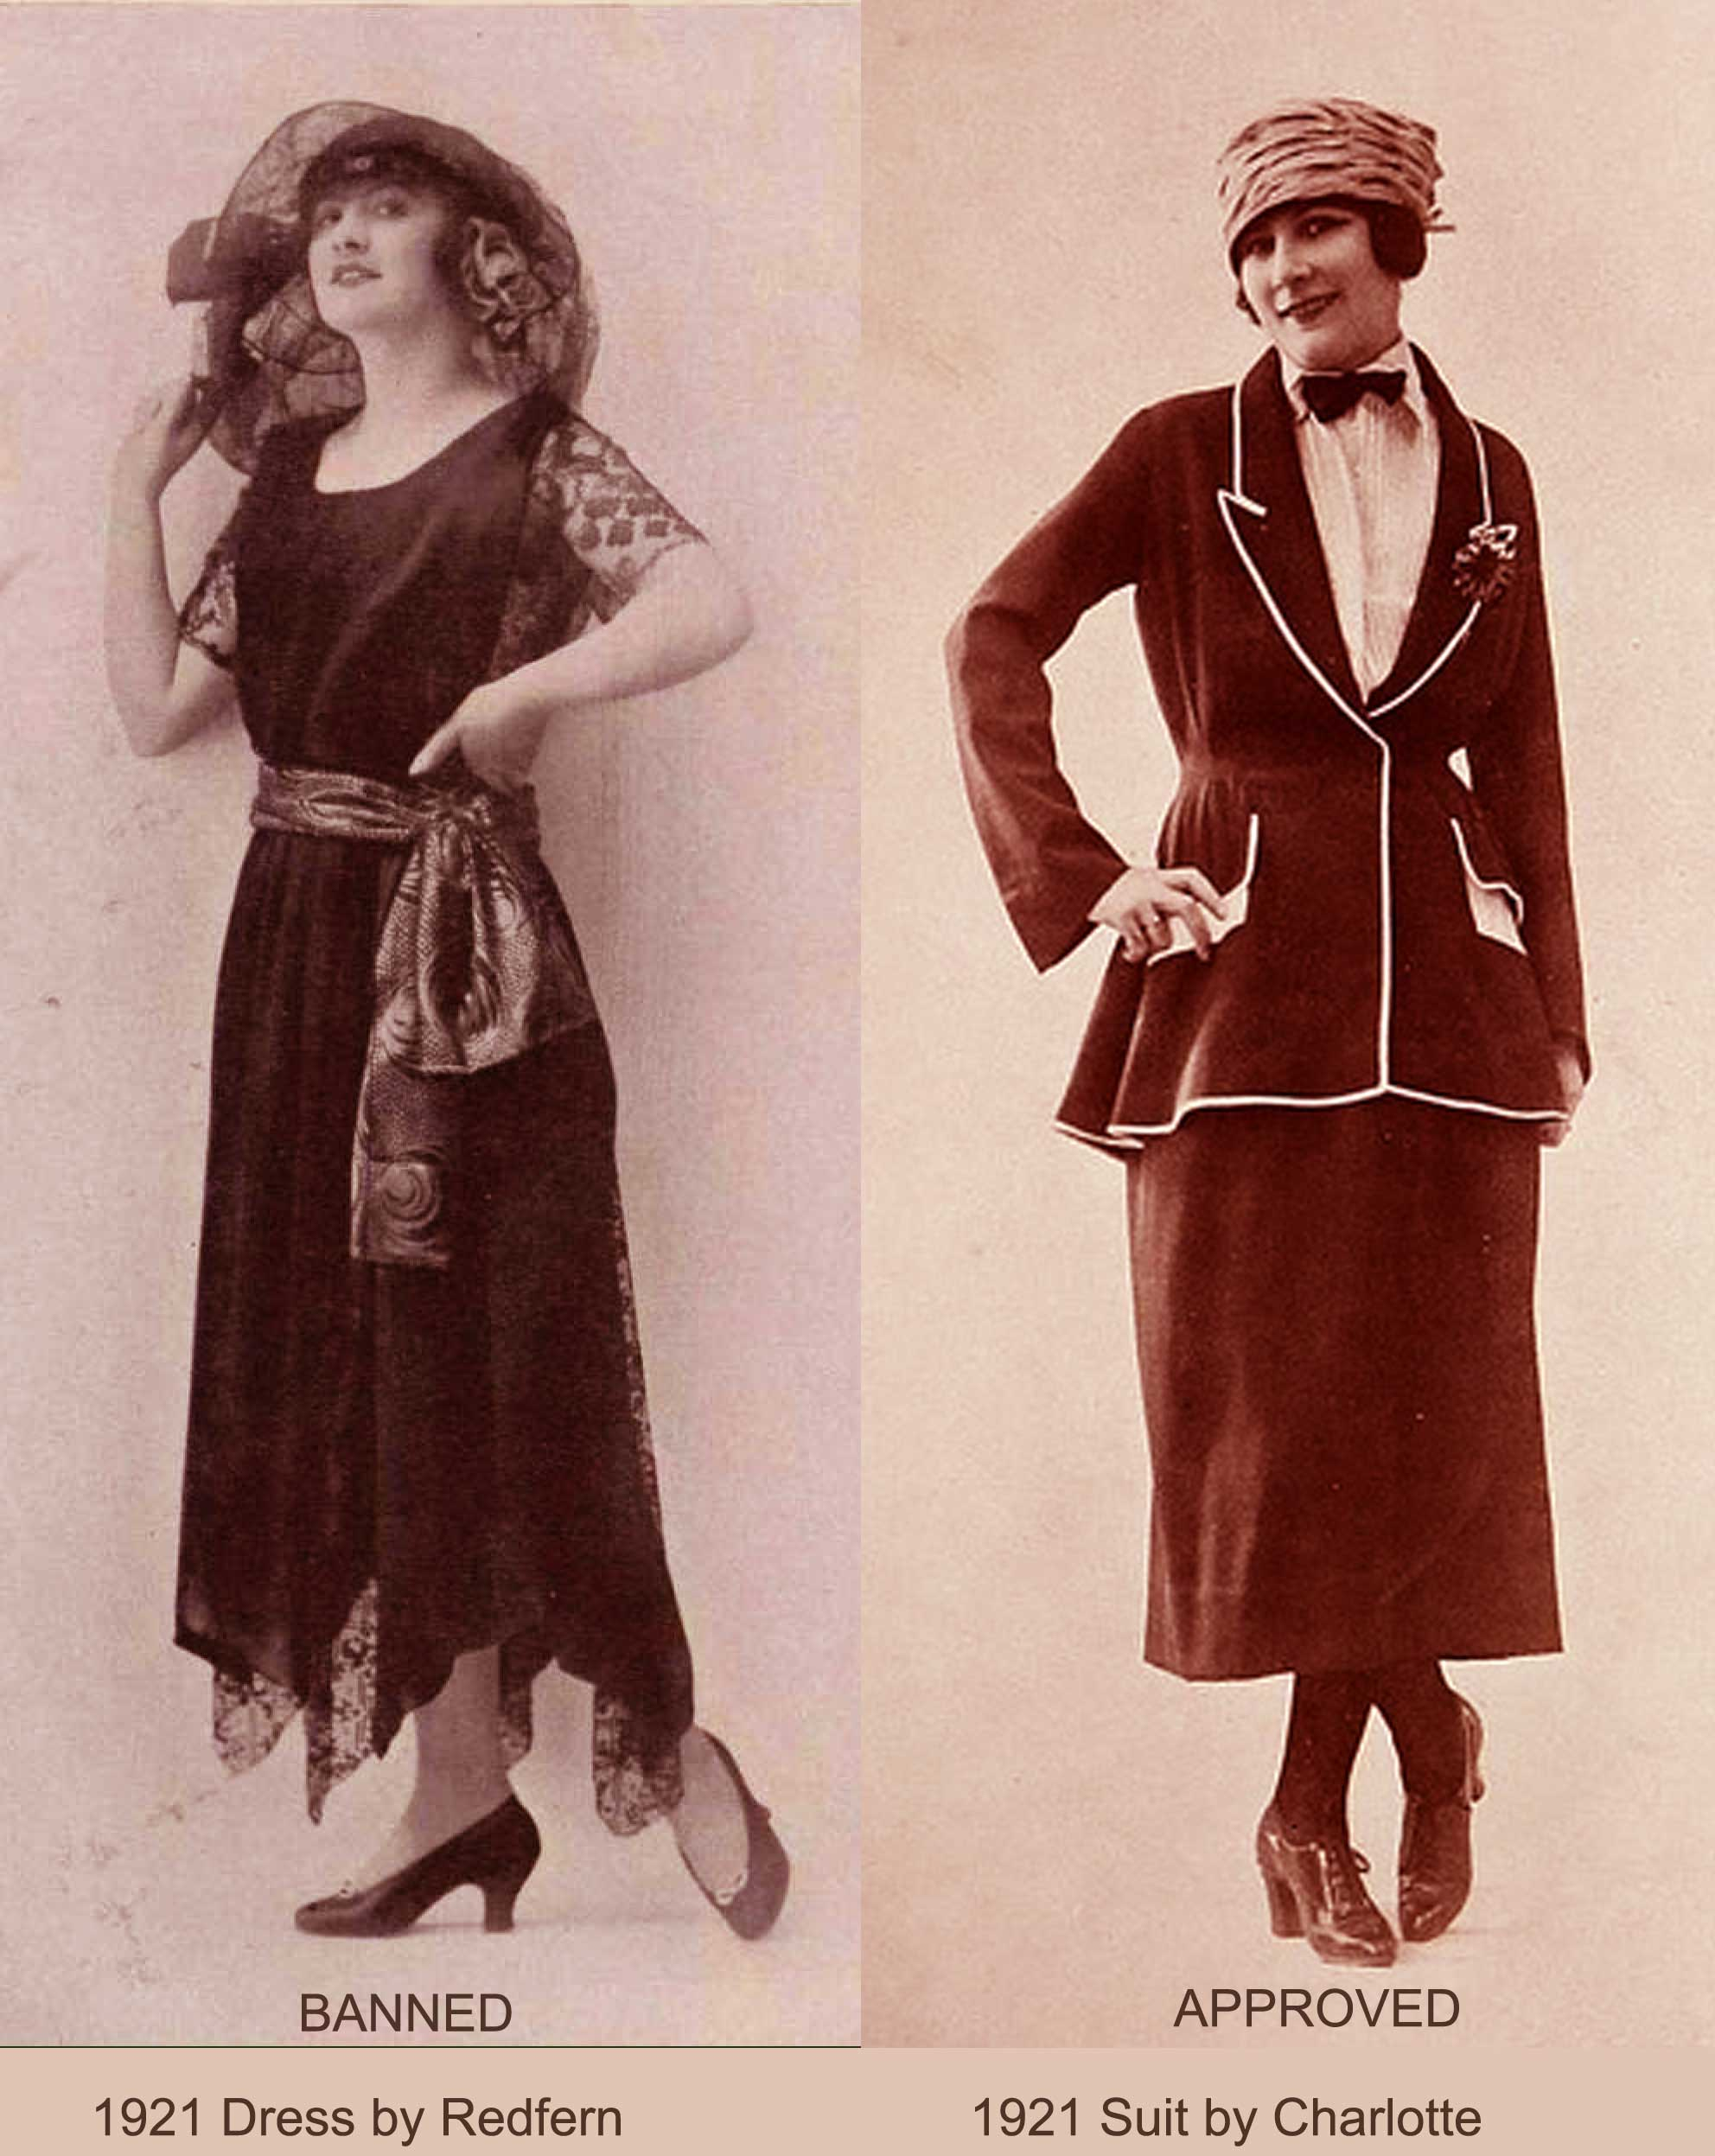 1920 clothing for women